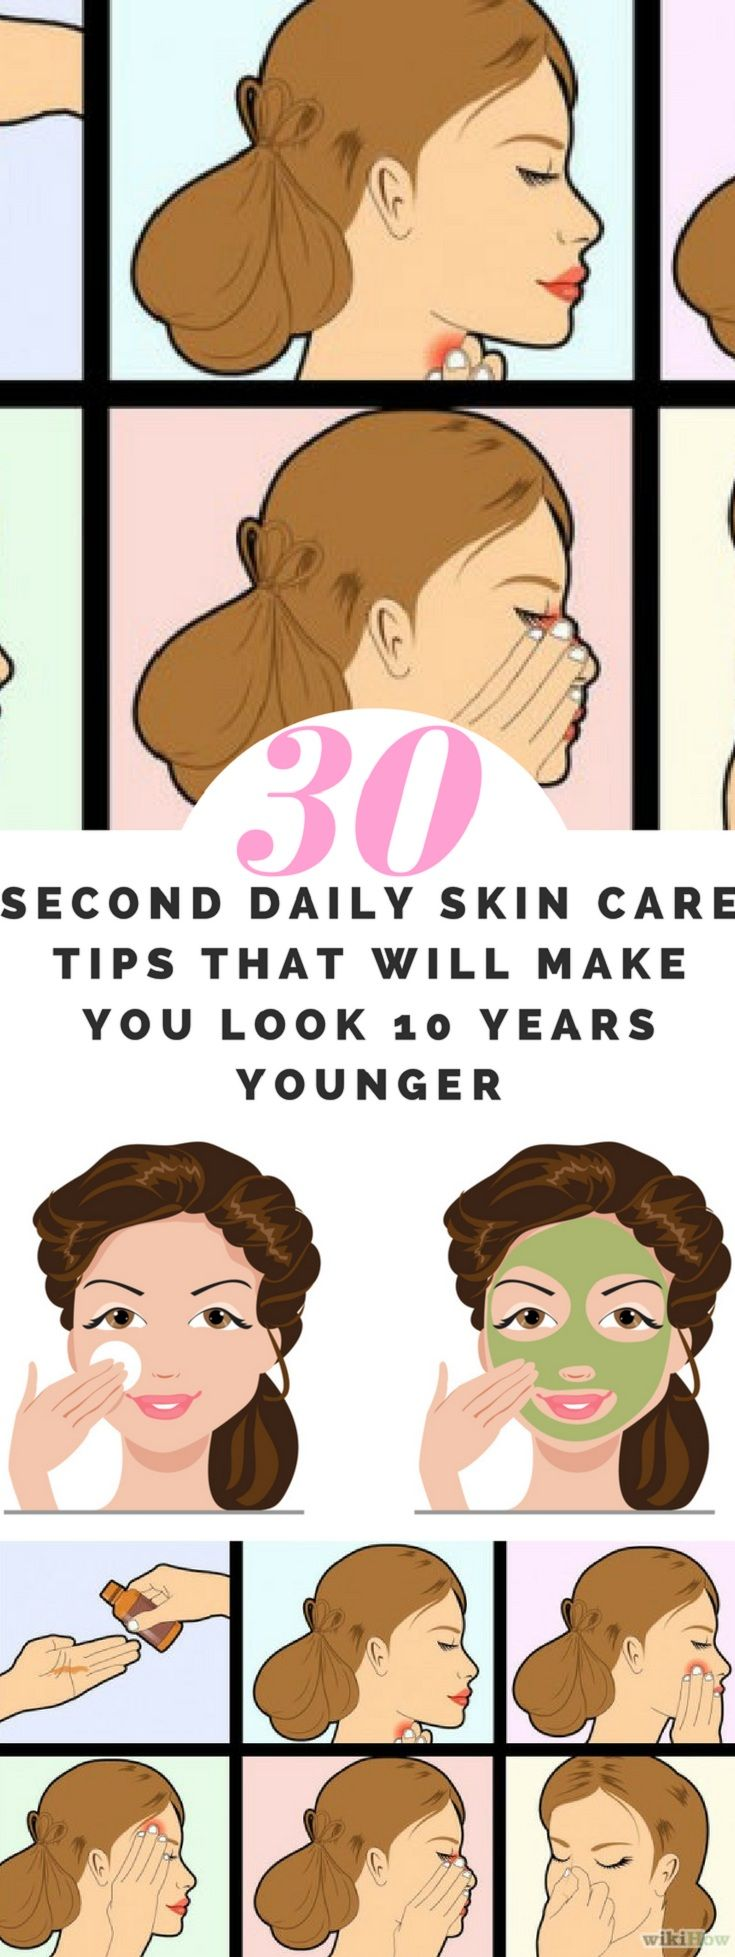 30-Second Daily Skin Care Tips That Will Make You Look 10 Years Younger #daily #skincare #tips #diy #remedies